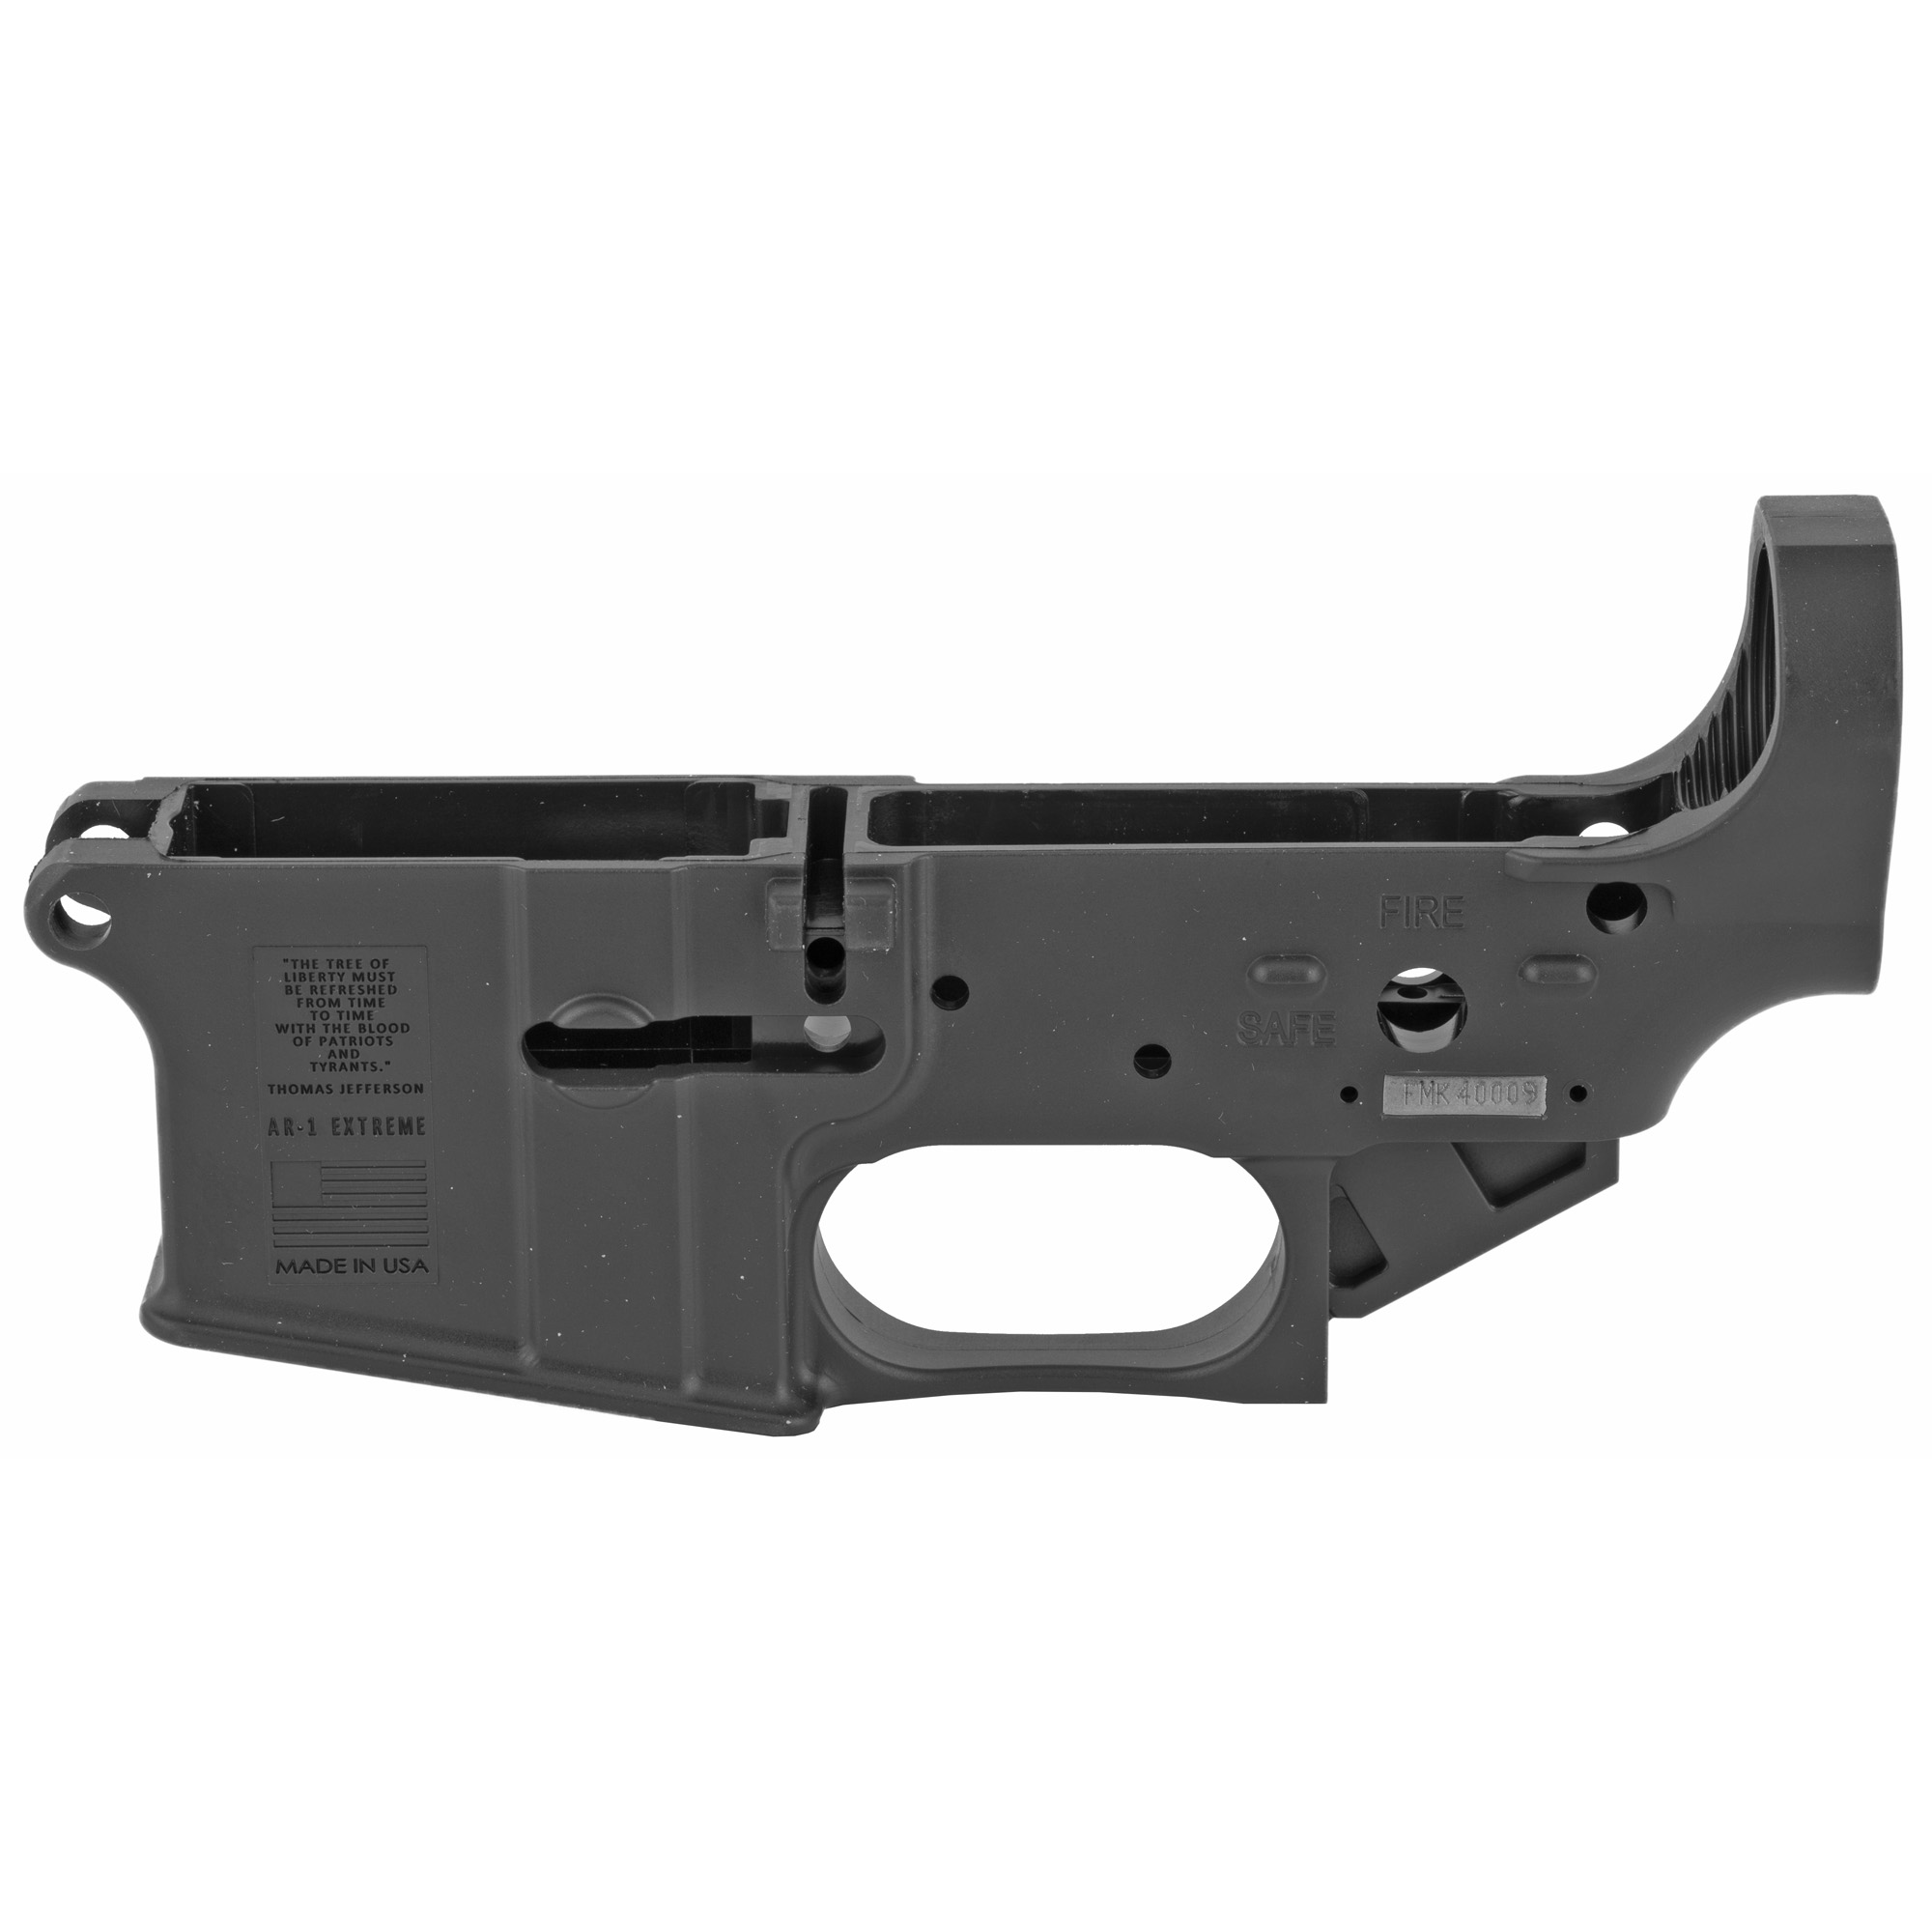 """This state of the art polymer allows for superior strength"""" unmatched durability and is extremely lightweight at only 4.3oz. The AR1 extreme is by far the strongest composite polymer lower on the market today."""